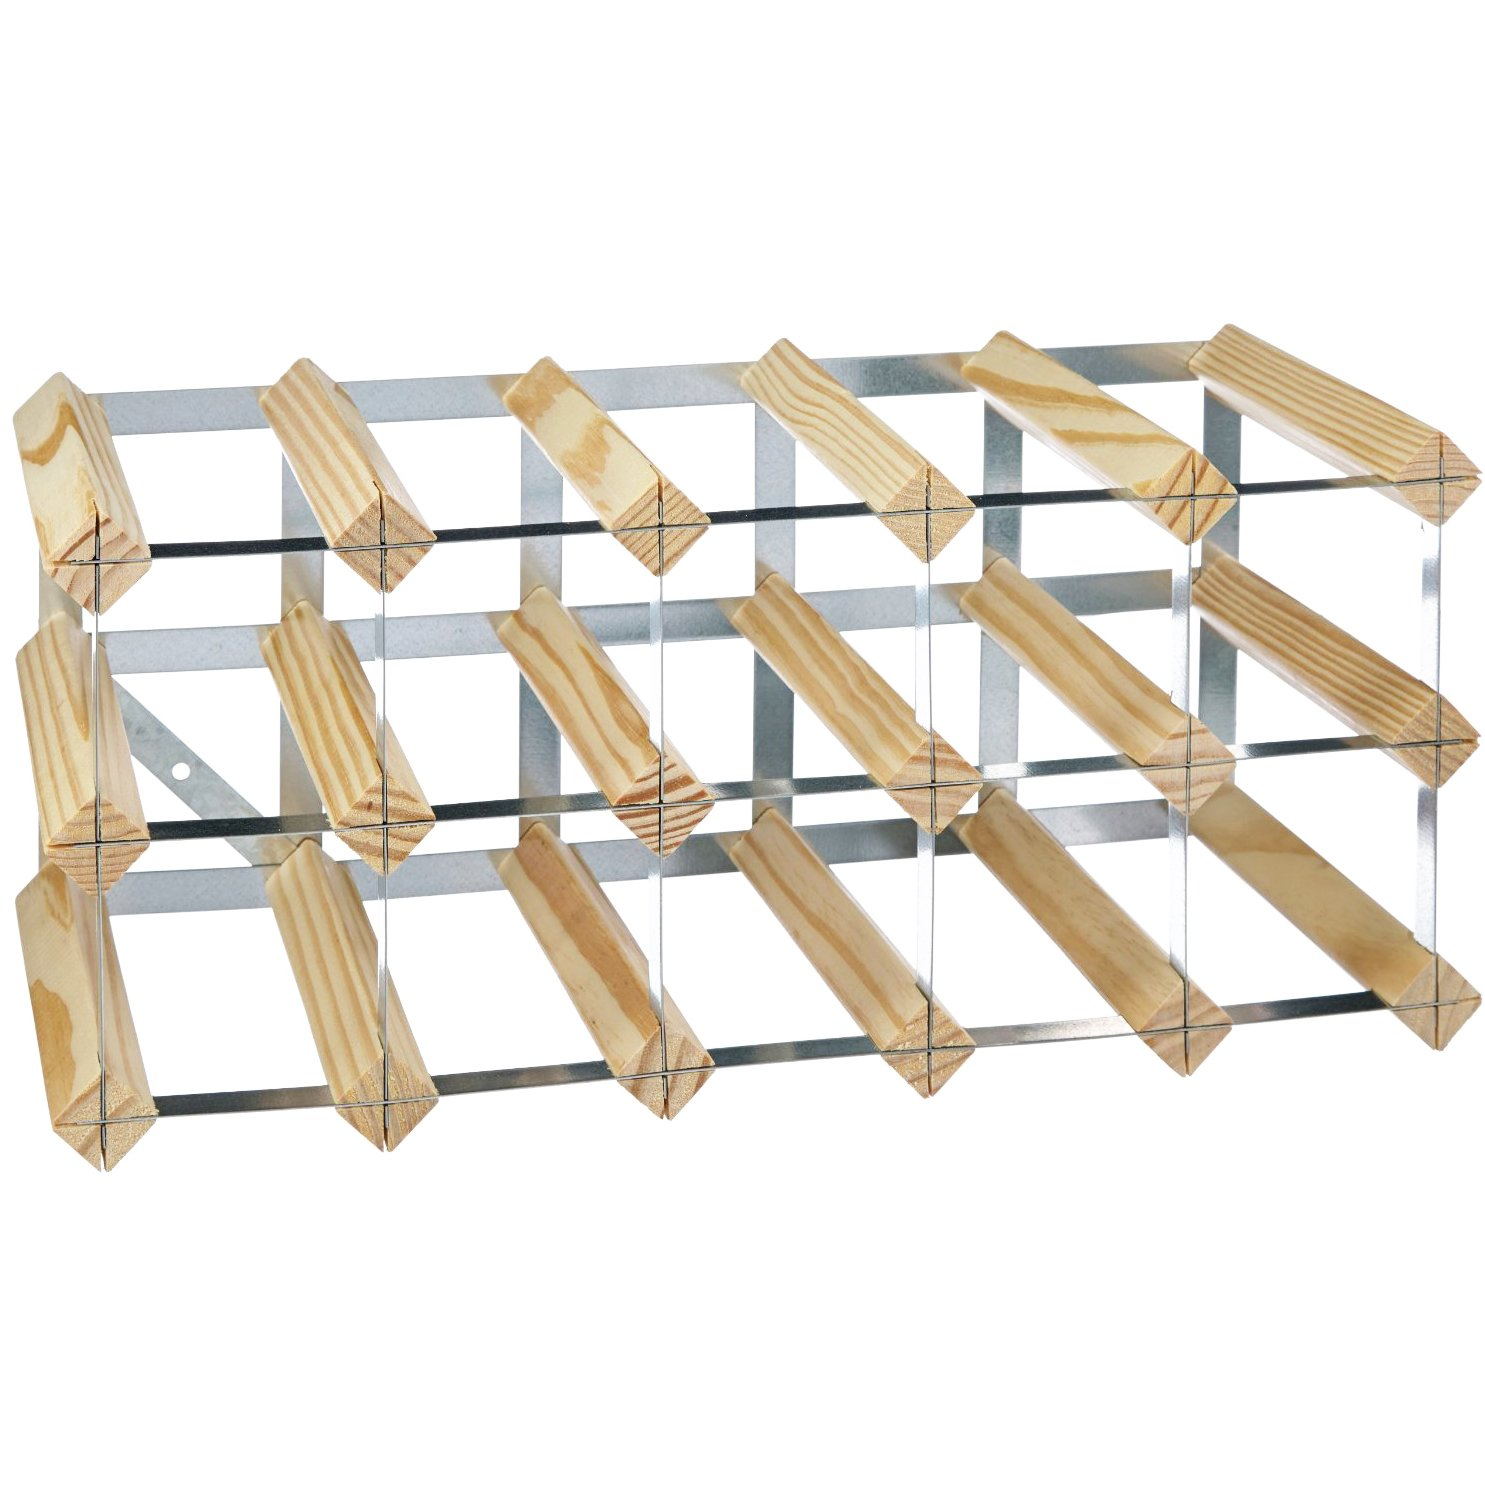 storage know about result image rack for the racks ways cellar f wine showcase mend